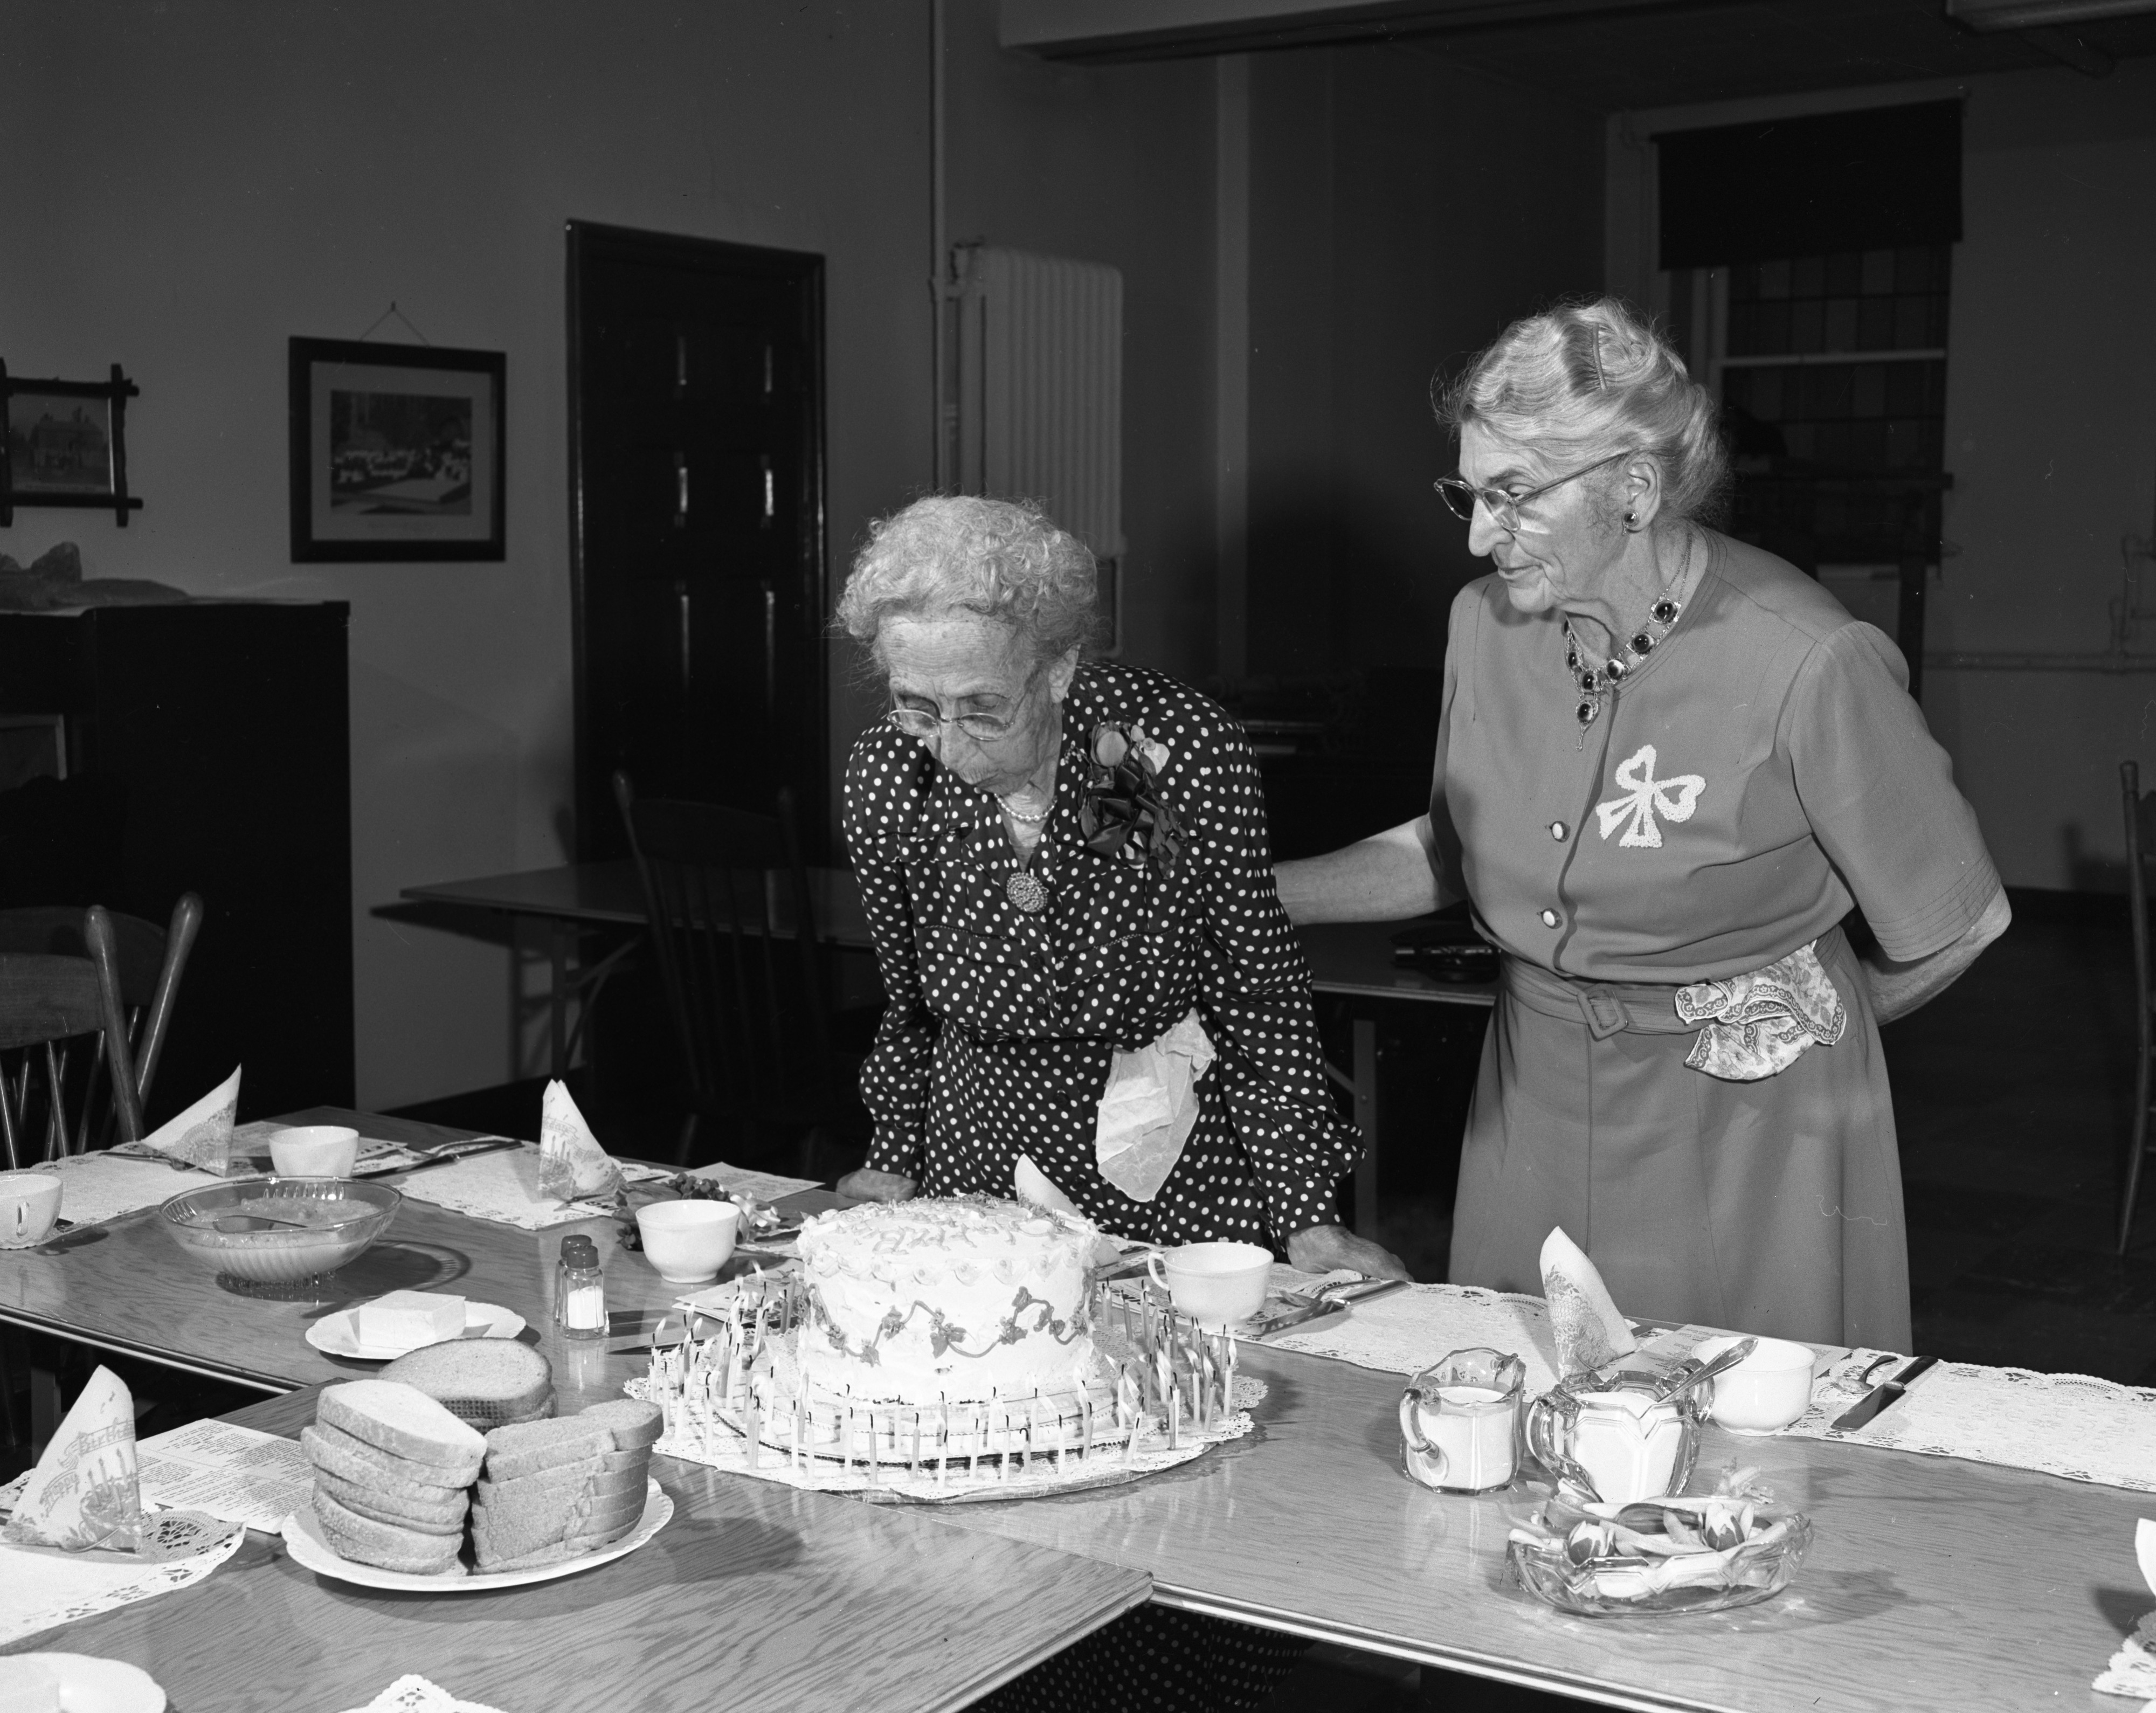 Clara Schmidt Blows Out Candles For Her 90th Birthday, May 1951 image